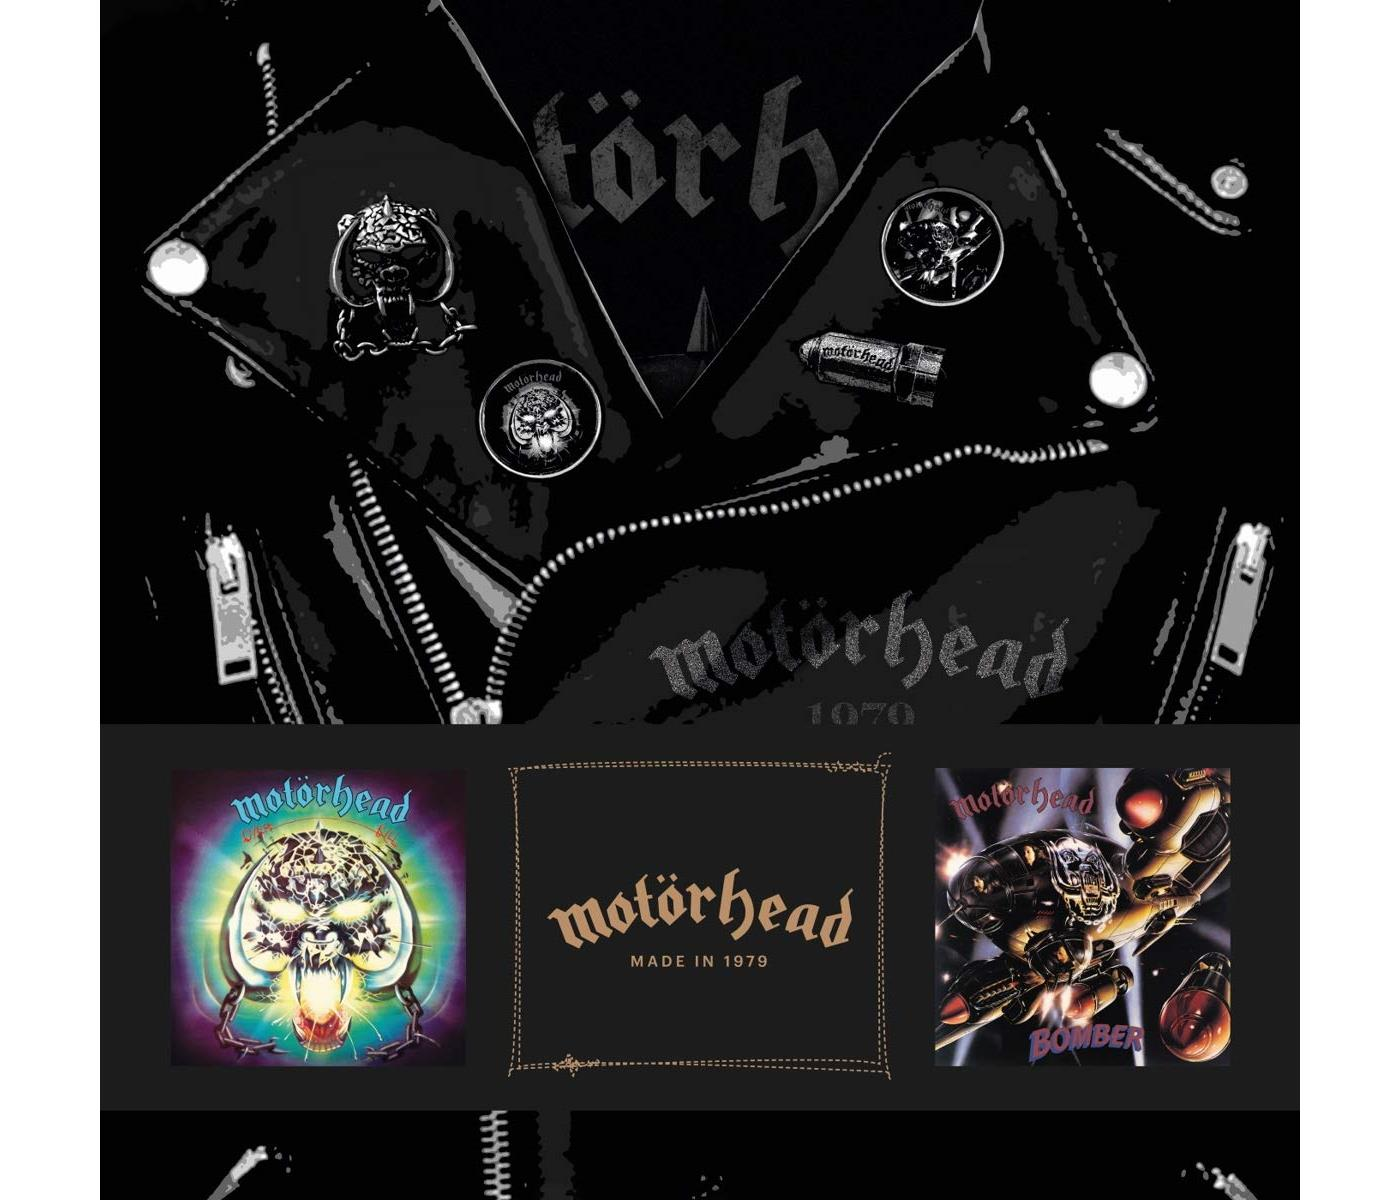 4050538462548 BMG Rights Management  Motörhead Motörhead Made In 1979 - LTD (9LP)